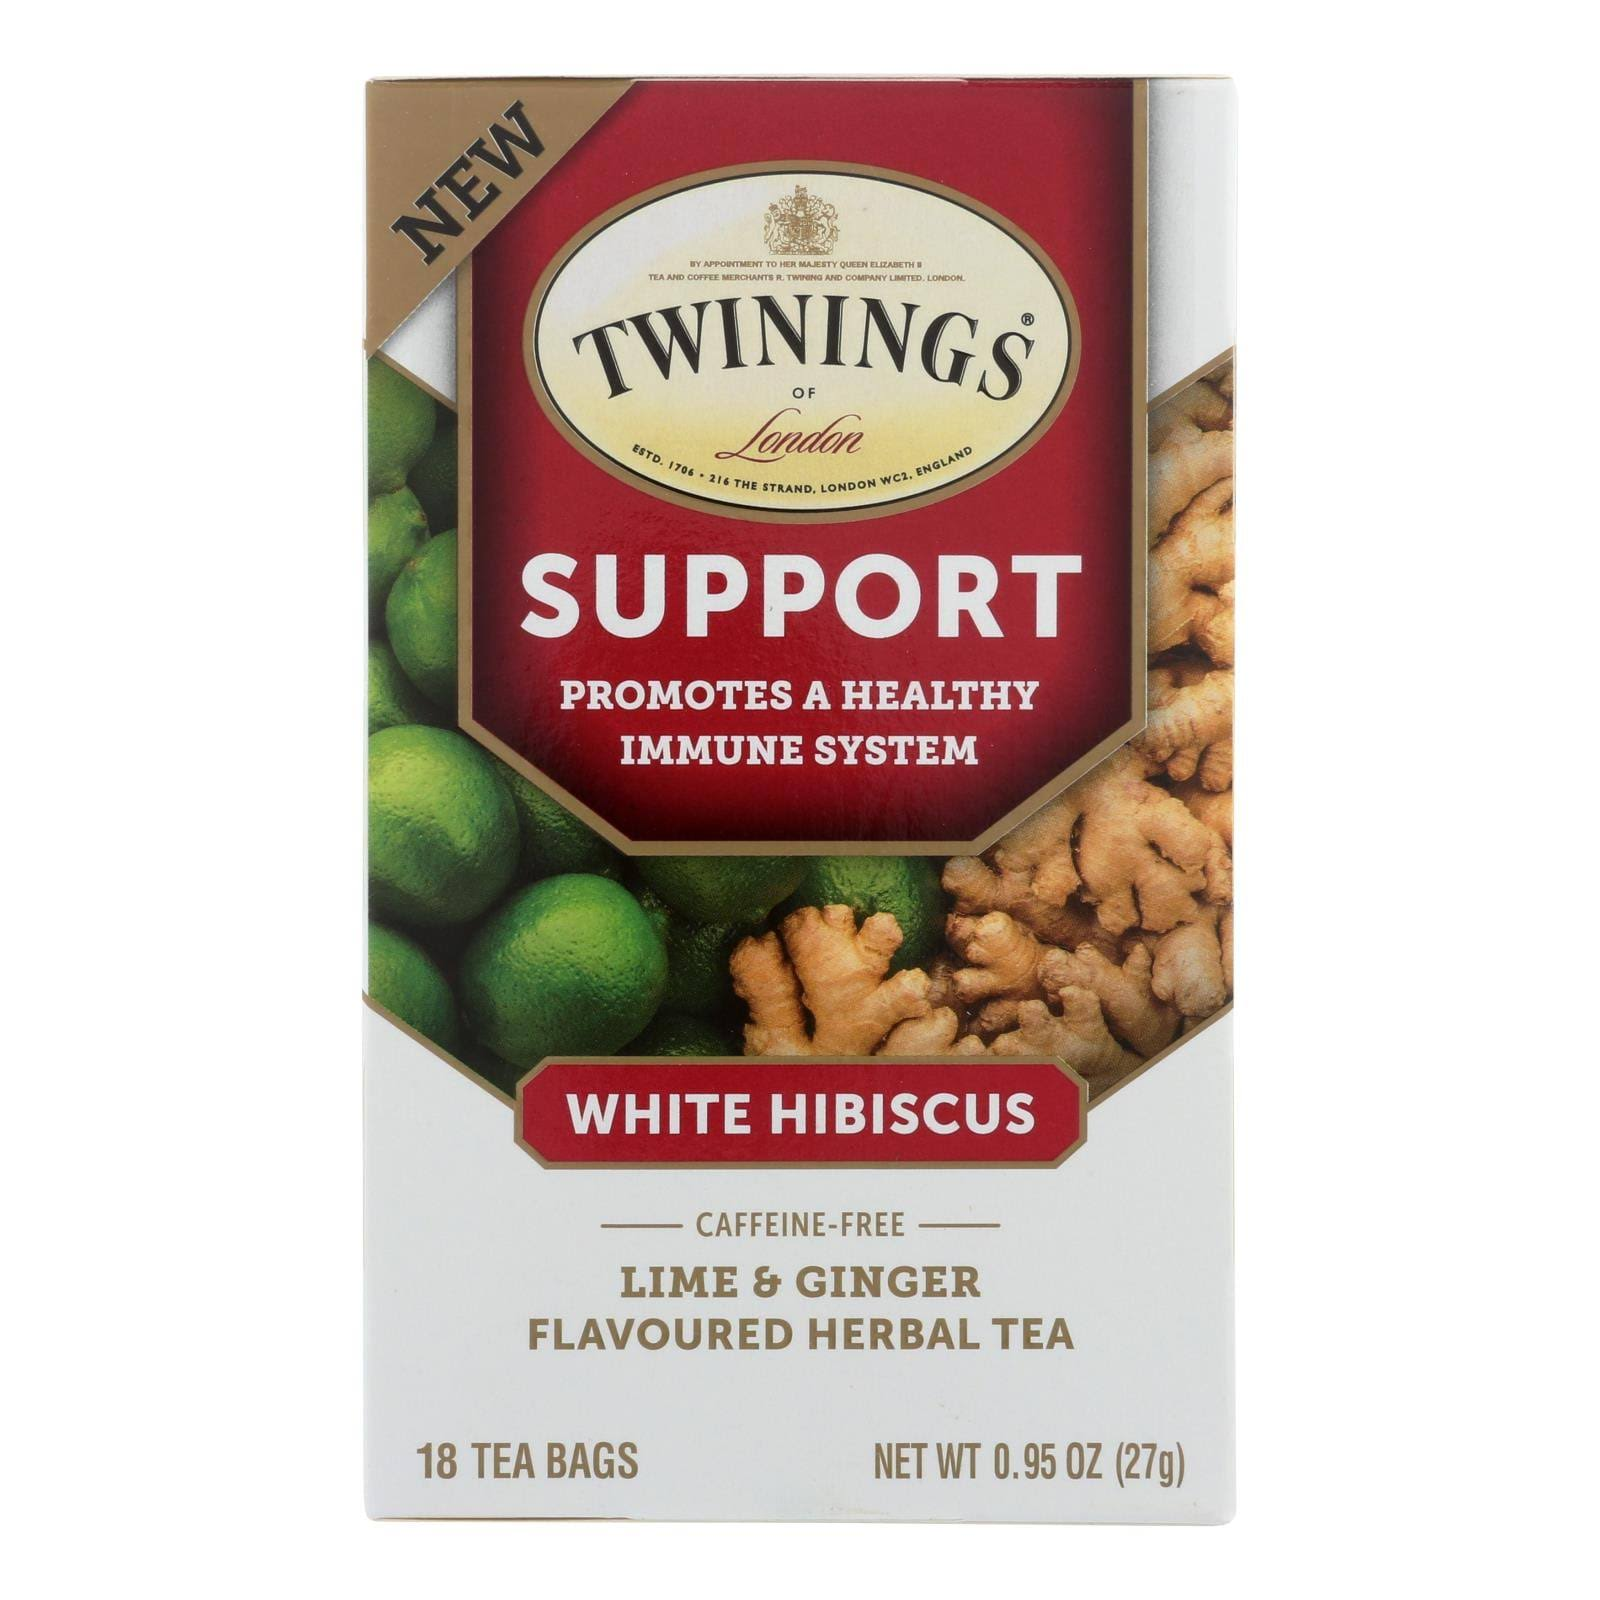 Twinings Herbal Tea, White Hibiscus, Lime & Ginger Flavoured, Caffeine-Free, Tea Bags - 18 bags, 0.95 oz